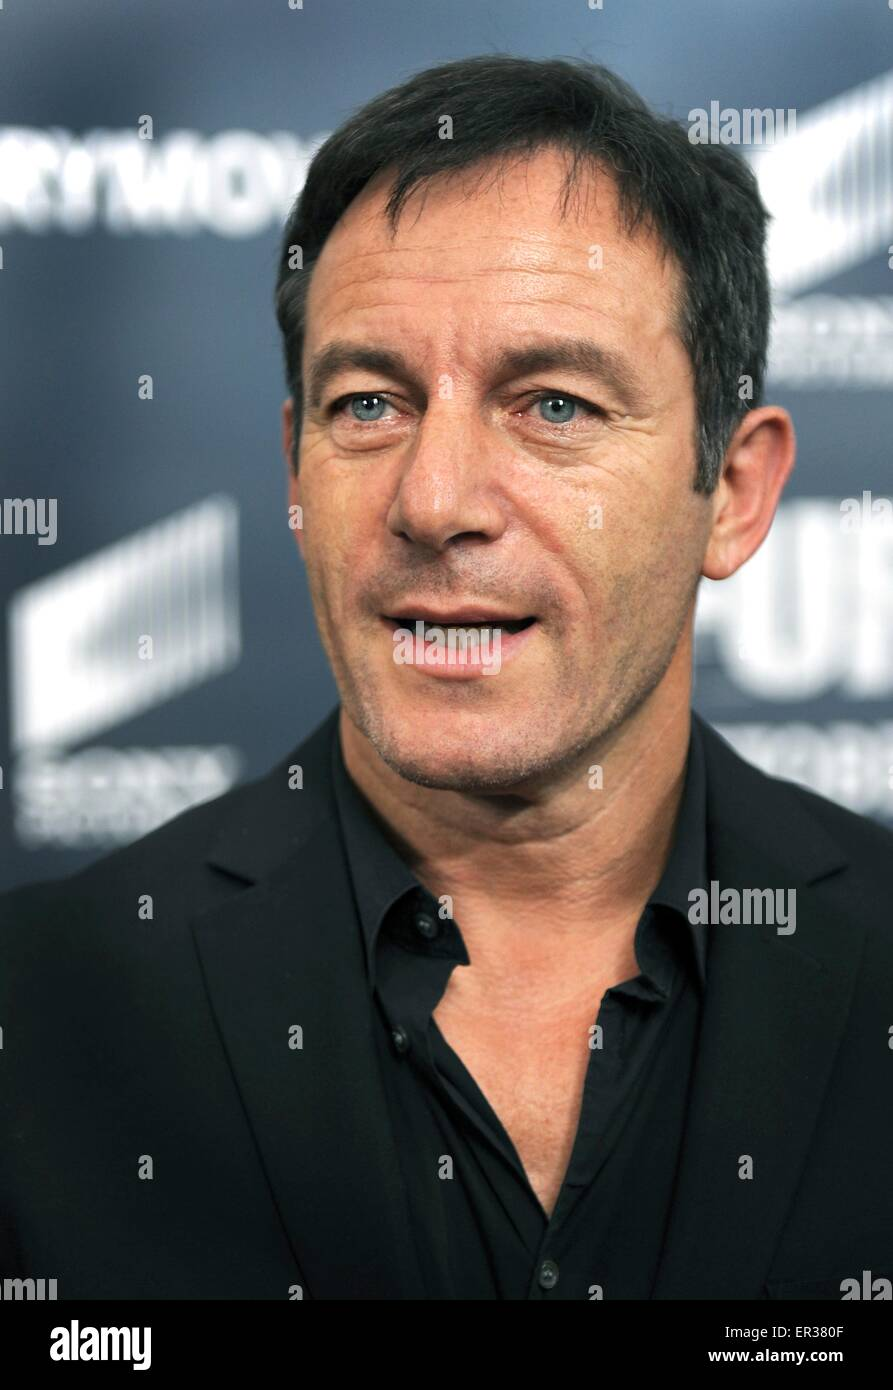 Actor Jason Isaacs at the premier of the blockbuster movie Fury at the Newseum October 21, 2014 in Washington D.C. - Stock Image